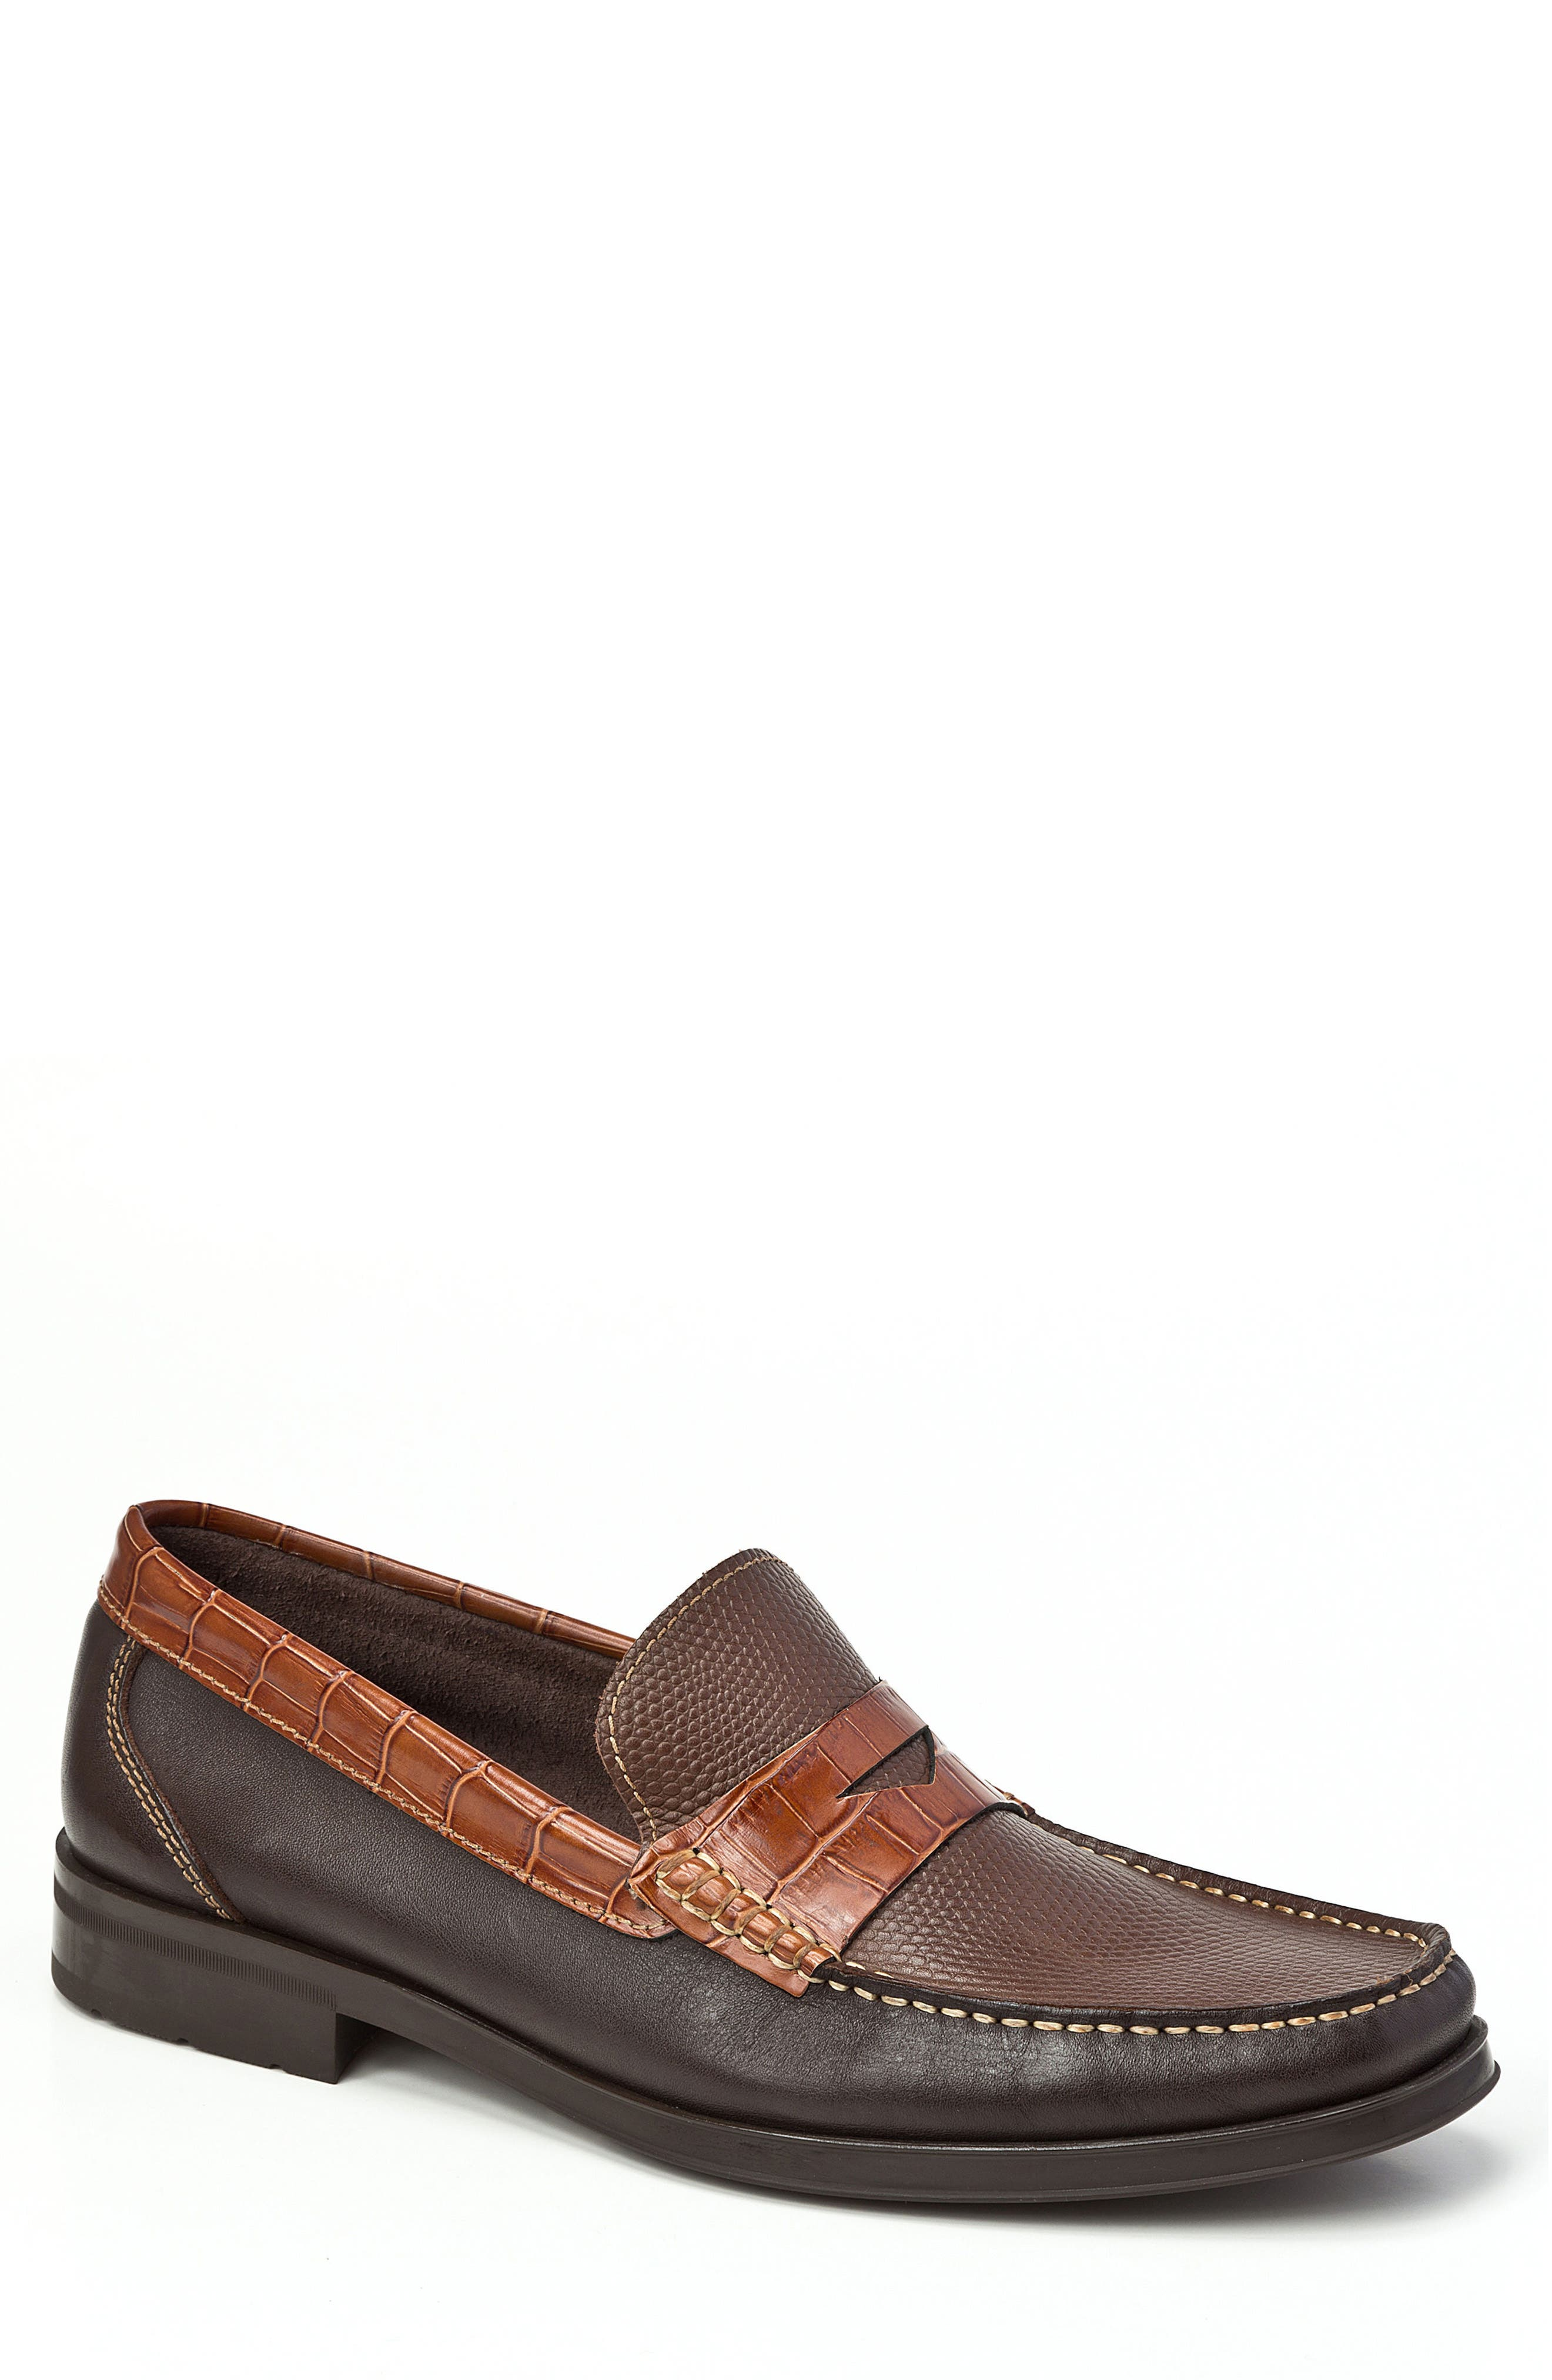 Image of Sandro Moscoloni Siena Pebble Embossed Penny Loafer